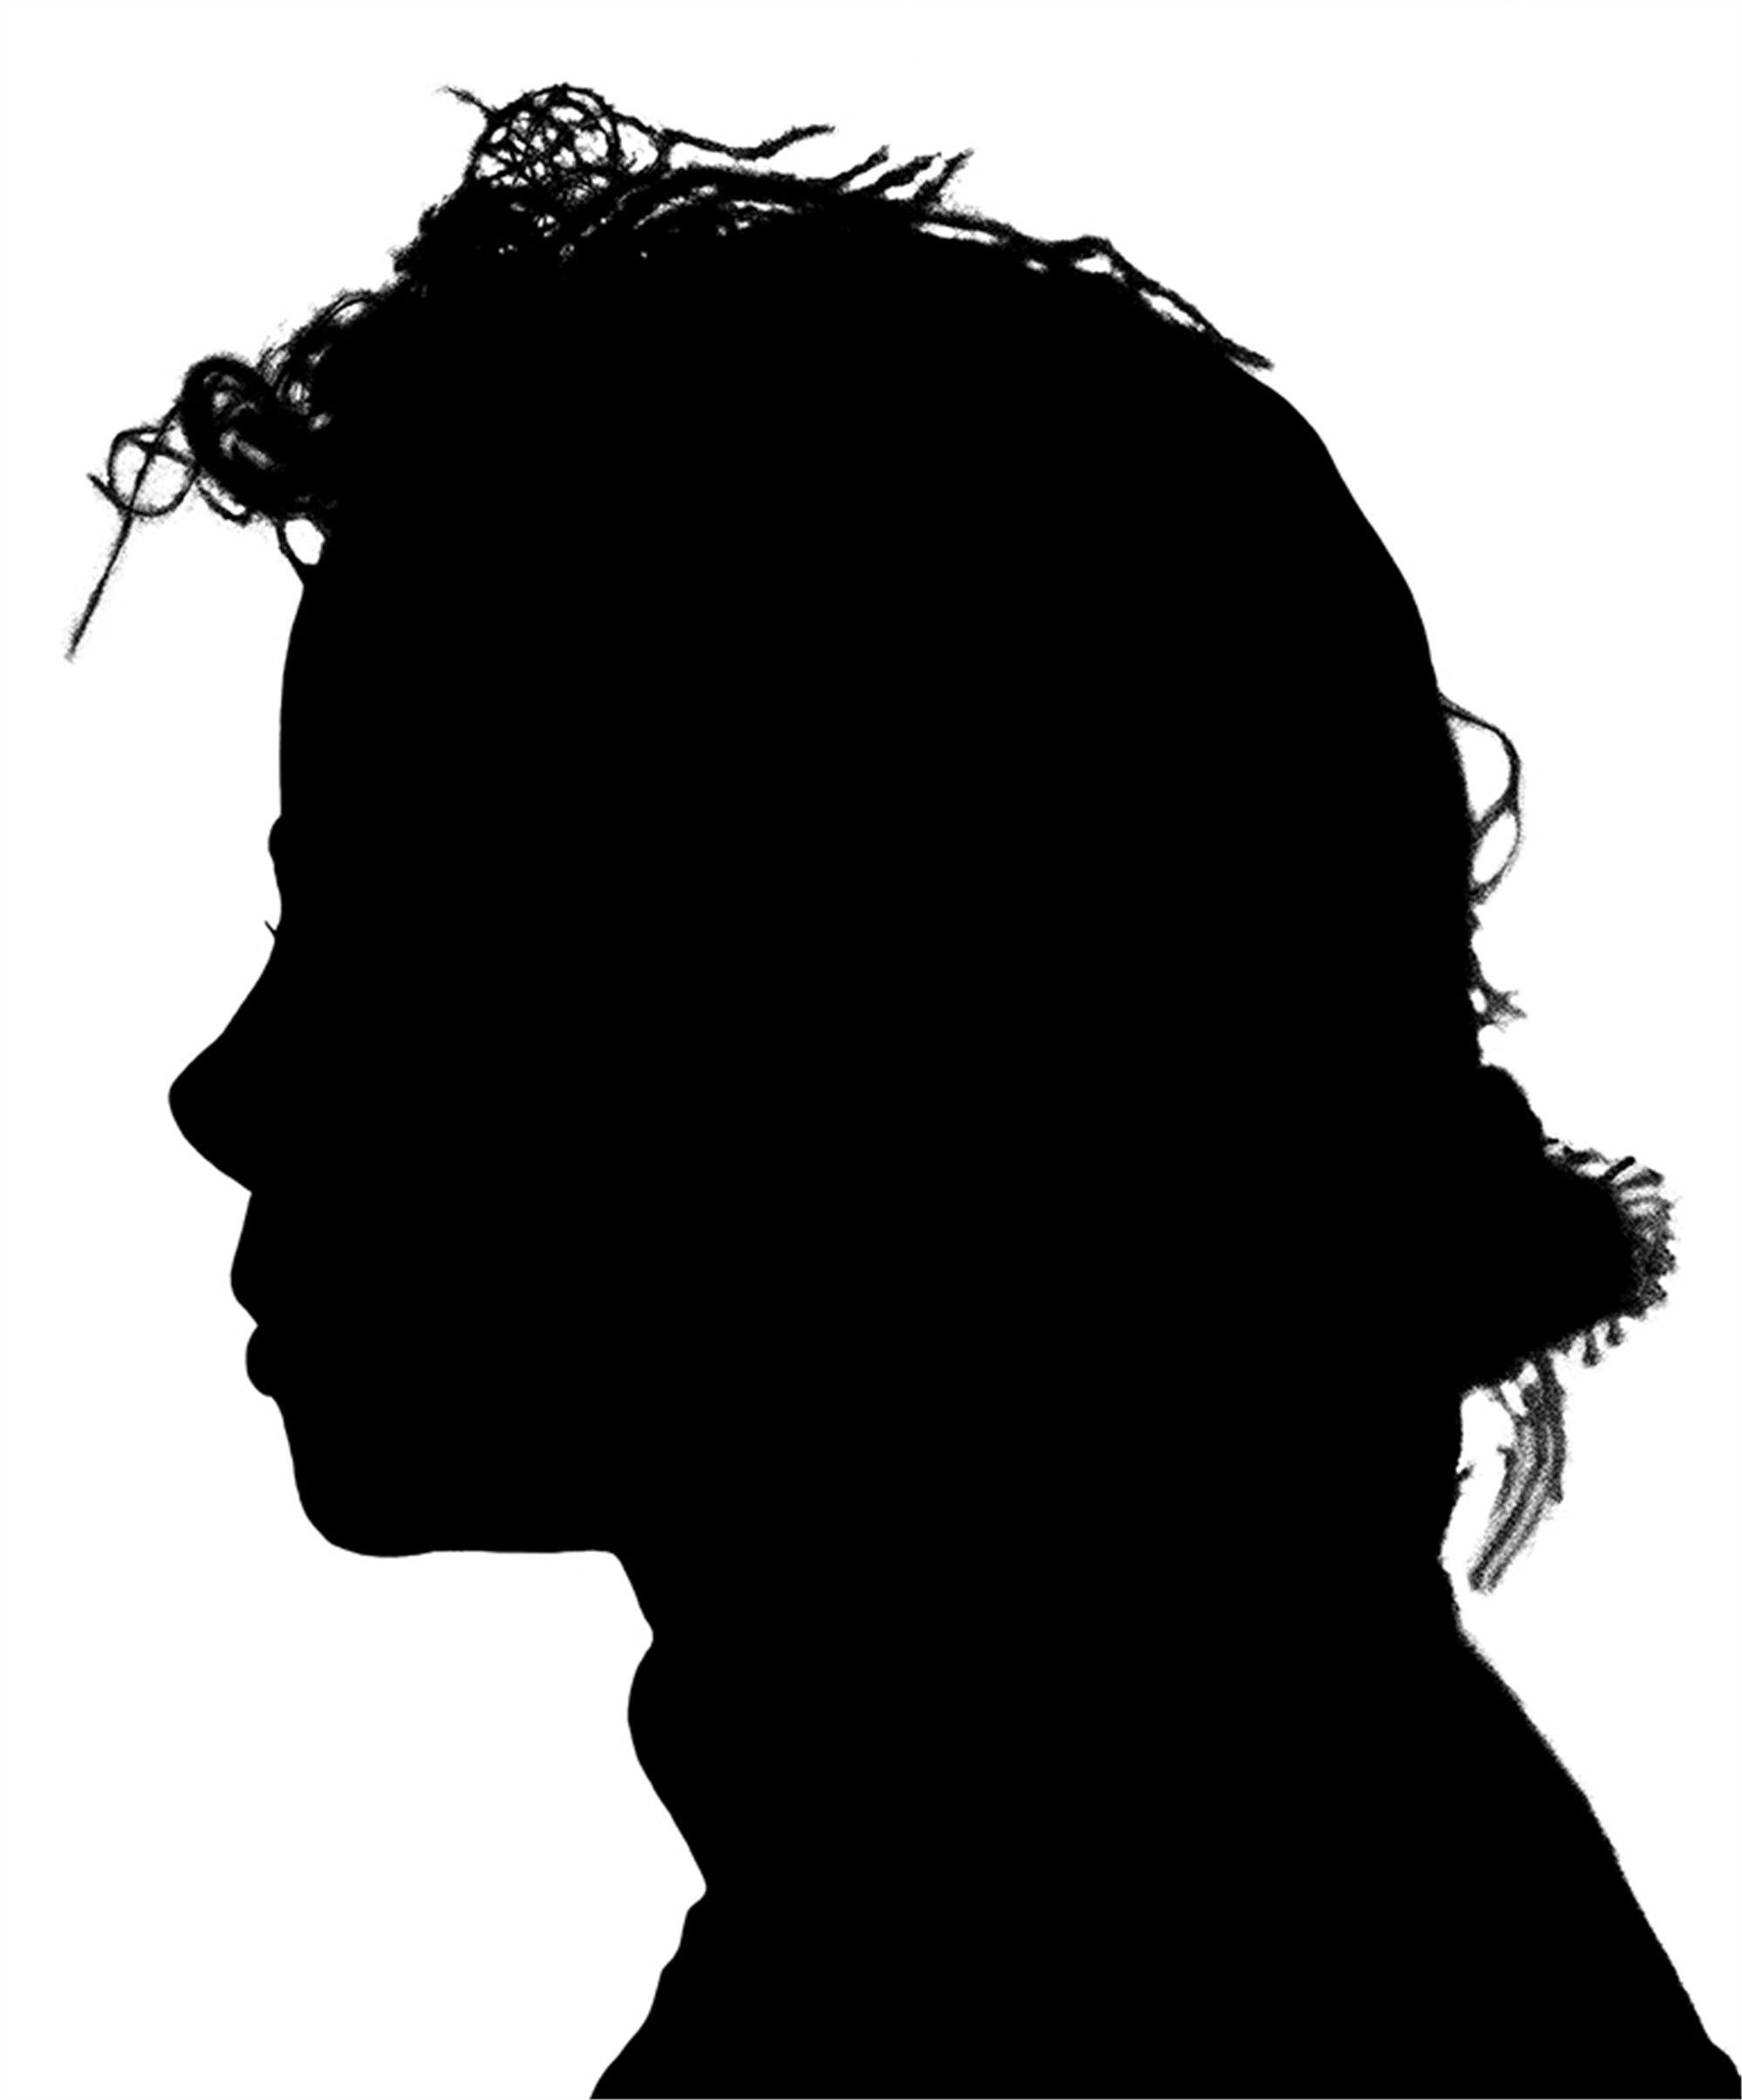 94047 Michael Jackson 665 Silhouette BW by Timothy White